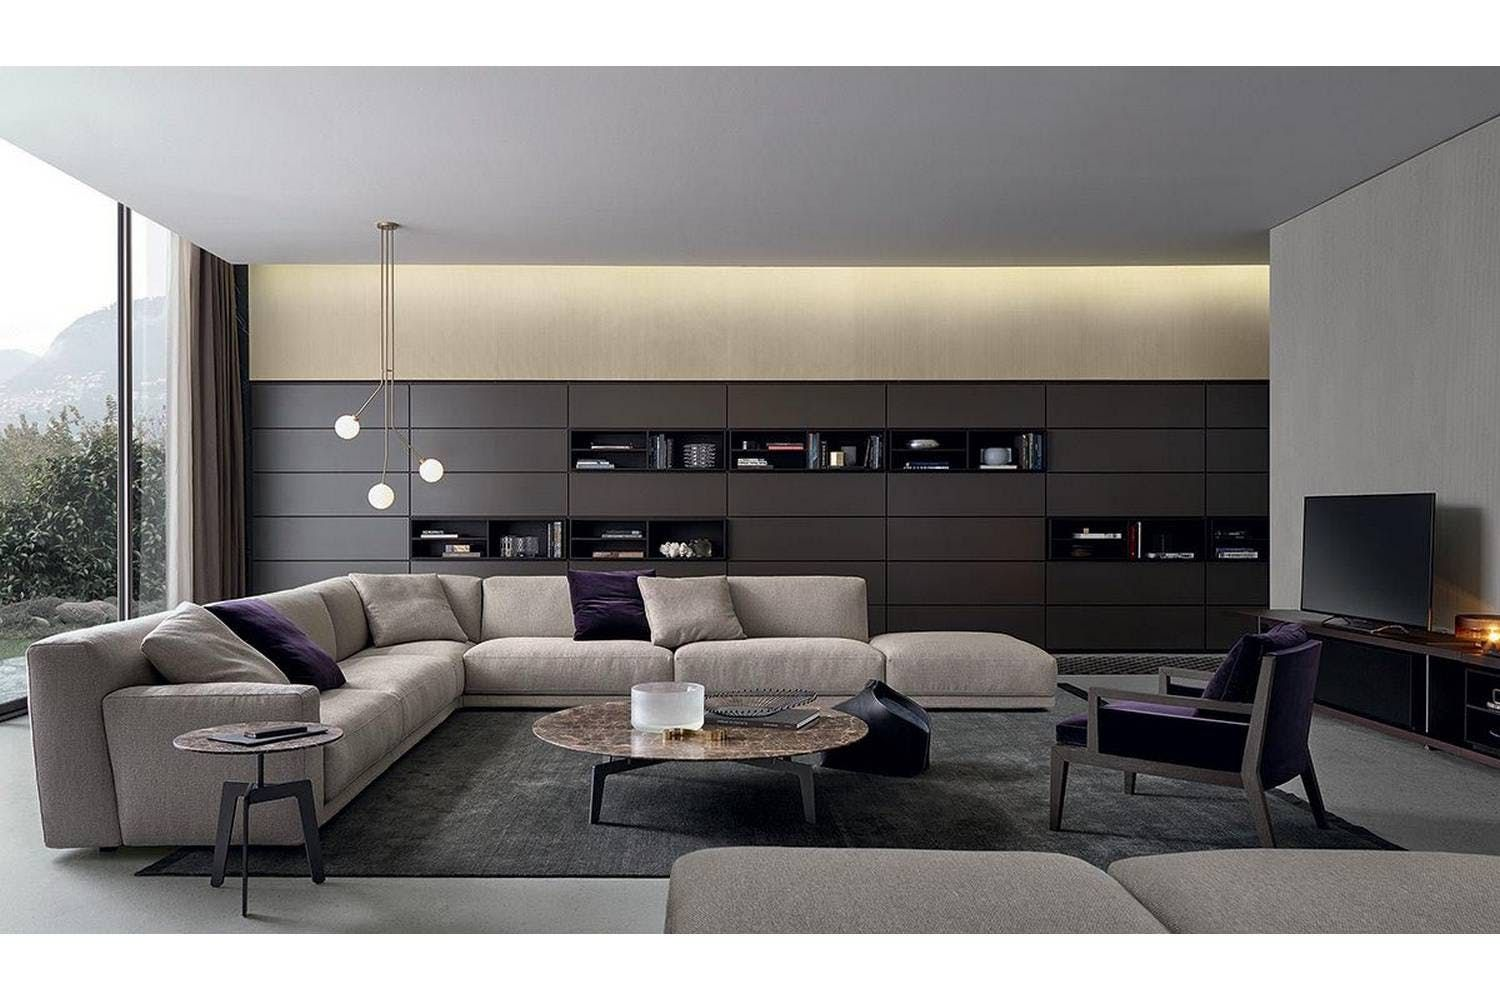 Wall System Bookcase by CR&S Poliform for Poliform | Bedroom ideas ...